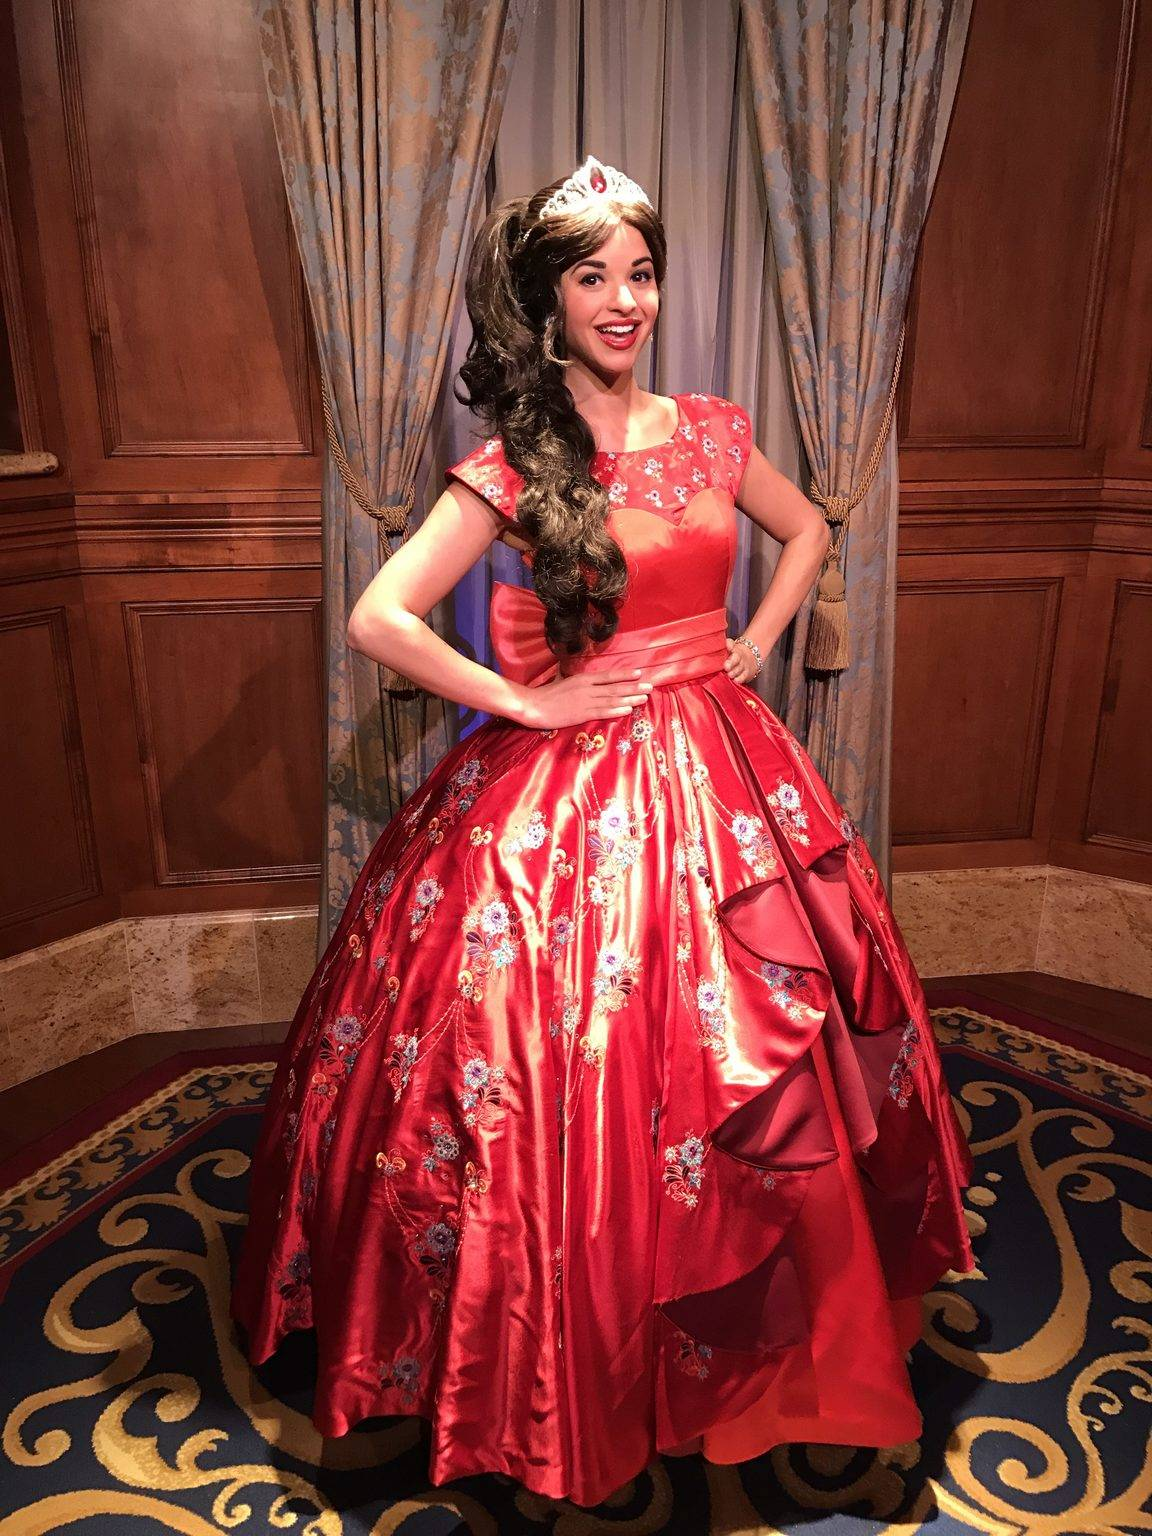 PHOTOS, VIDEO: Elena of Avalor Disney Junior Character Meet and Greet, Now Soft-Open at the Magic Kingdom